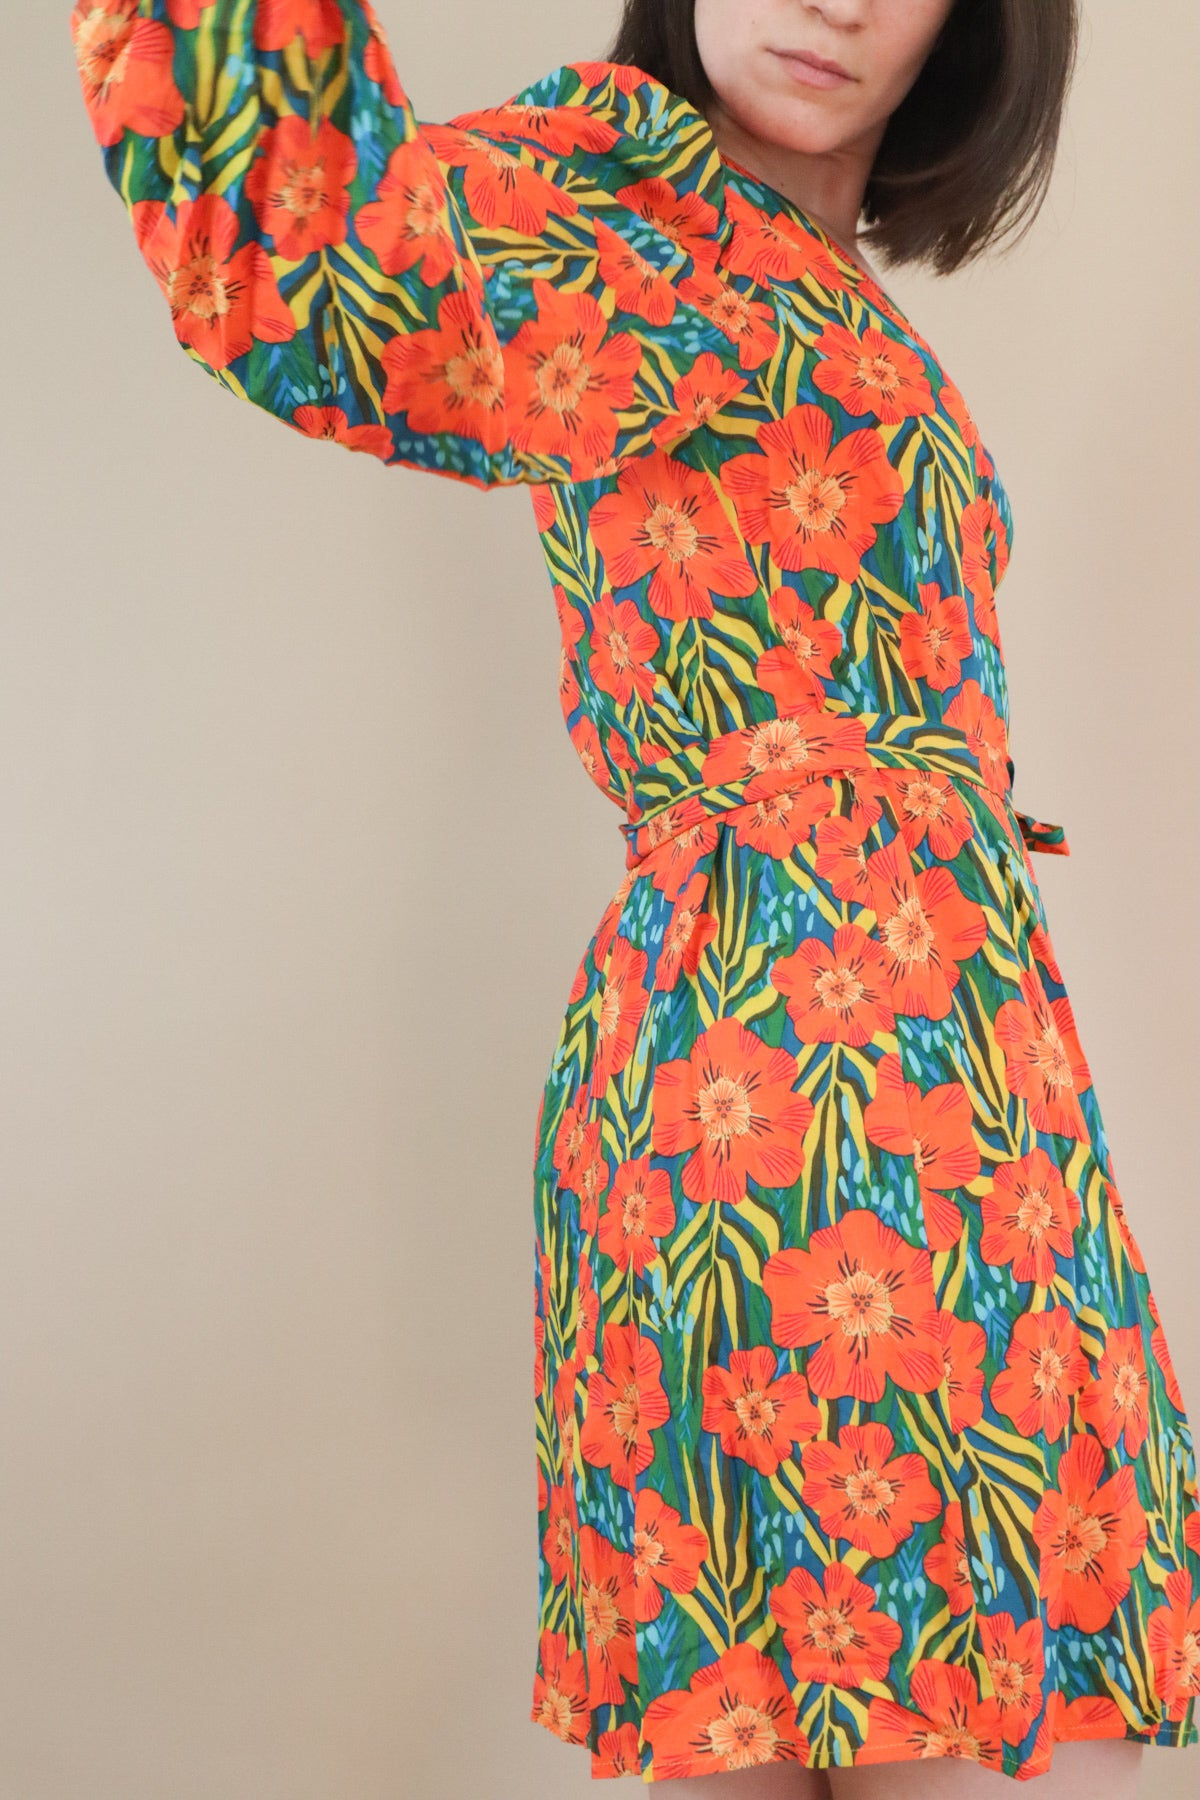 Mutiny Dress - Orange